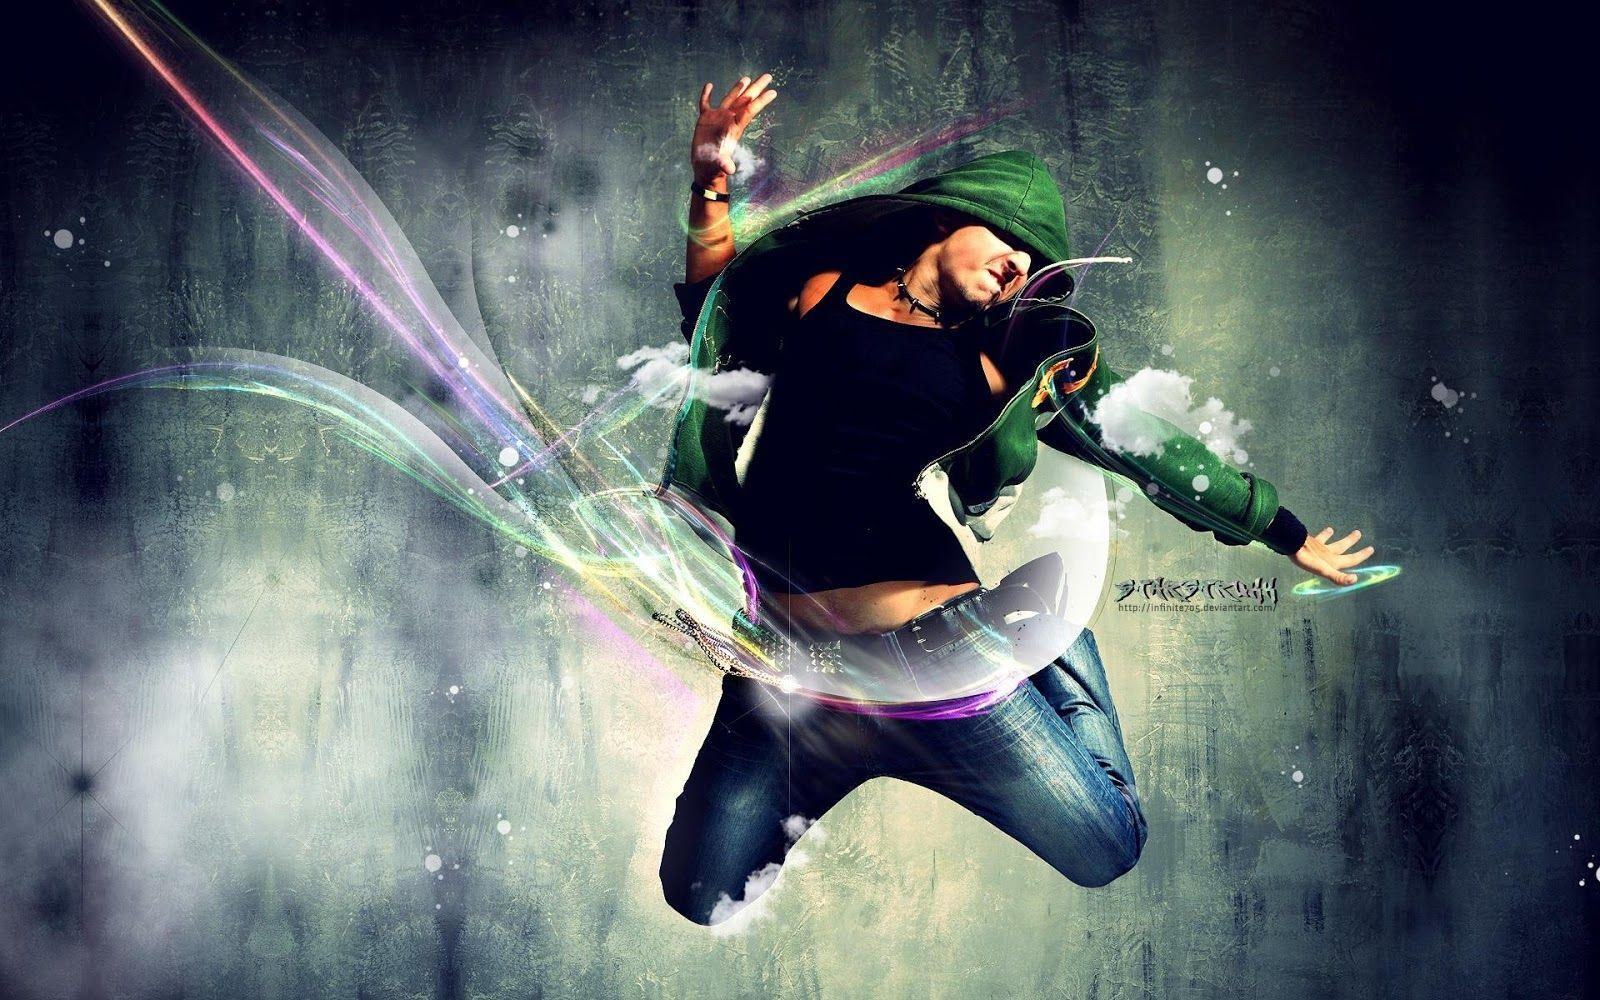 Related Pictures Hip Hop Dance Wallpapers Cool Backgrounds And Car